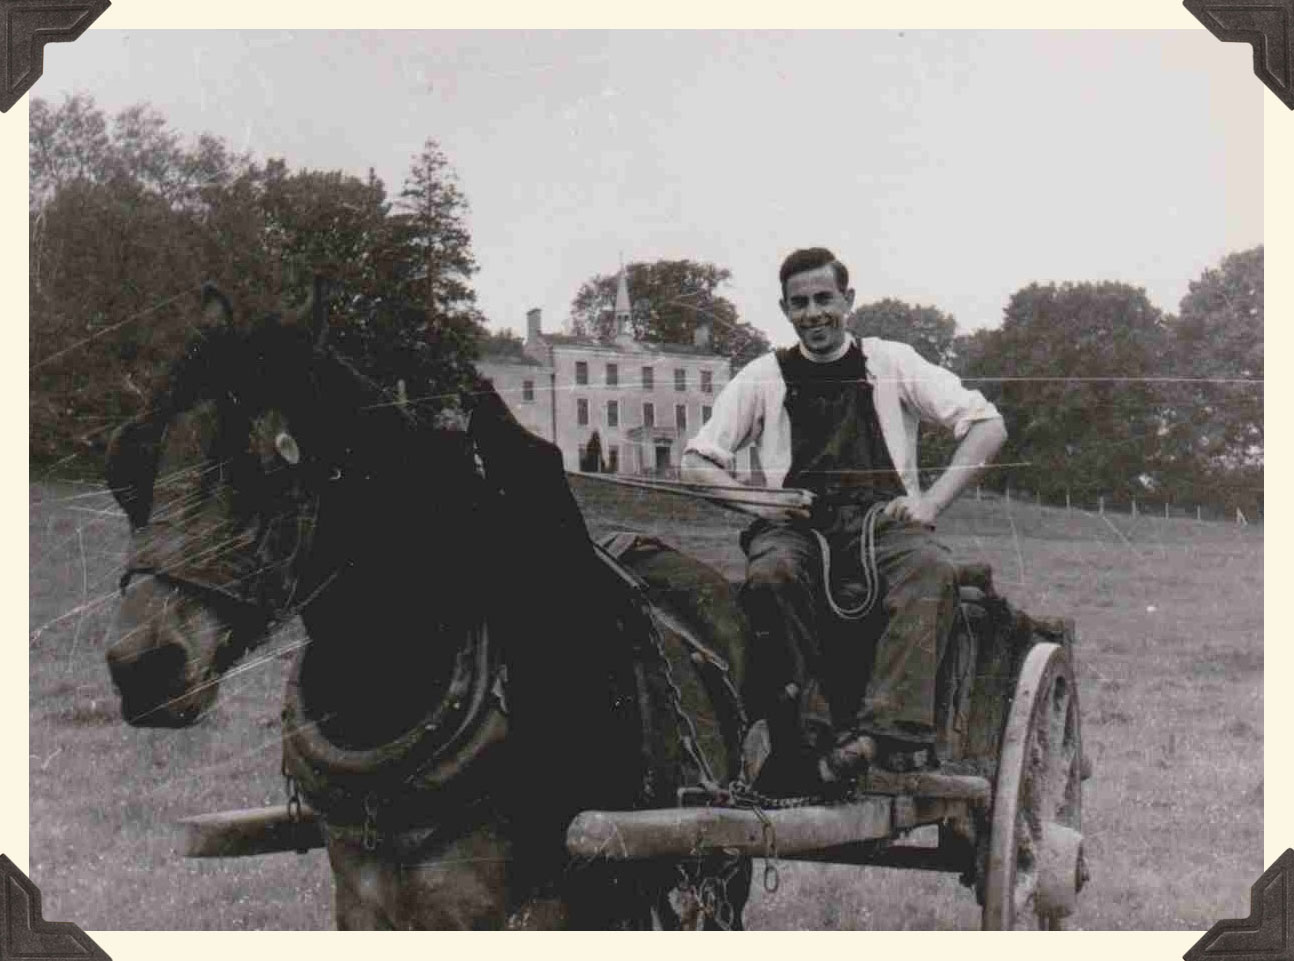 An Augustinian with a Horse and cart.